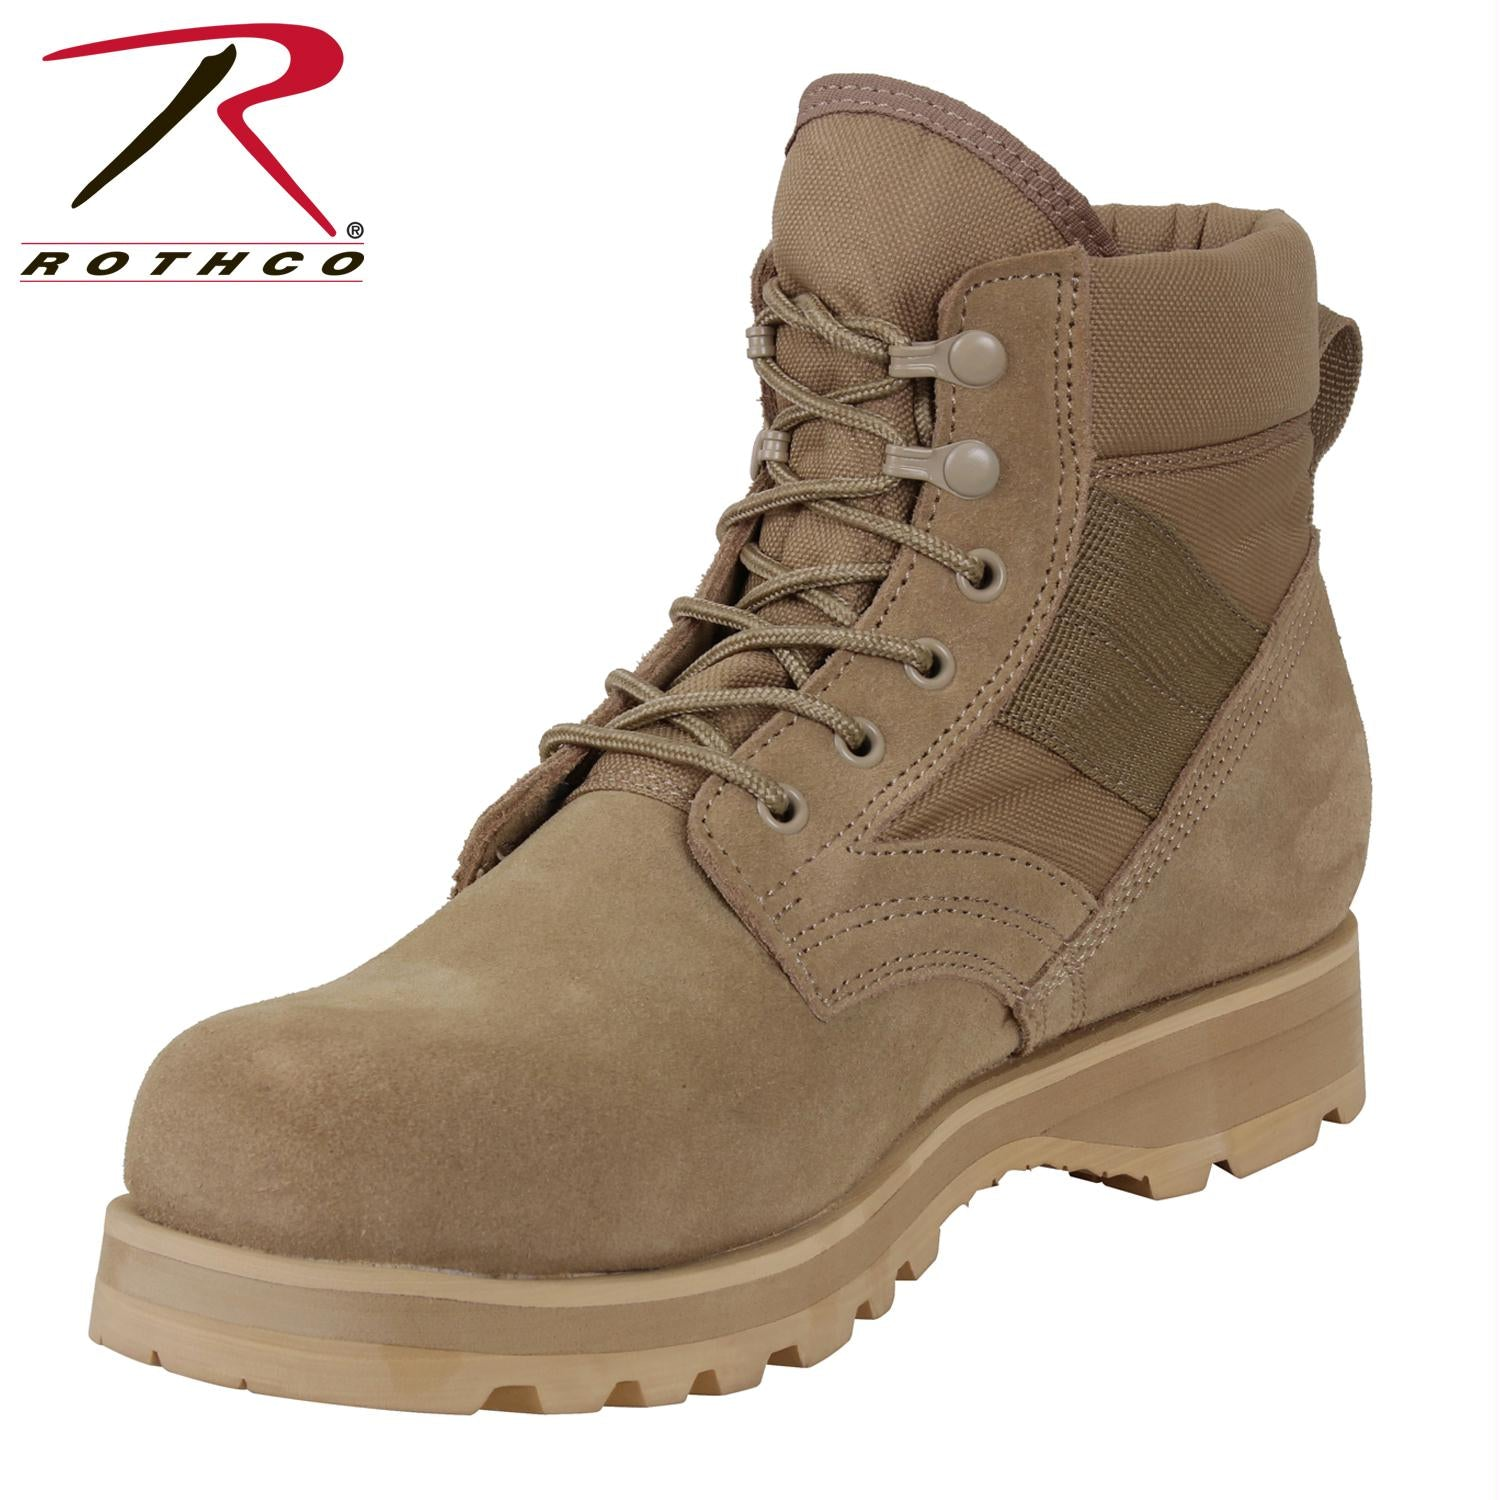 Rothco Military Combat Work Boot - Desert Tan / 5